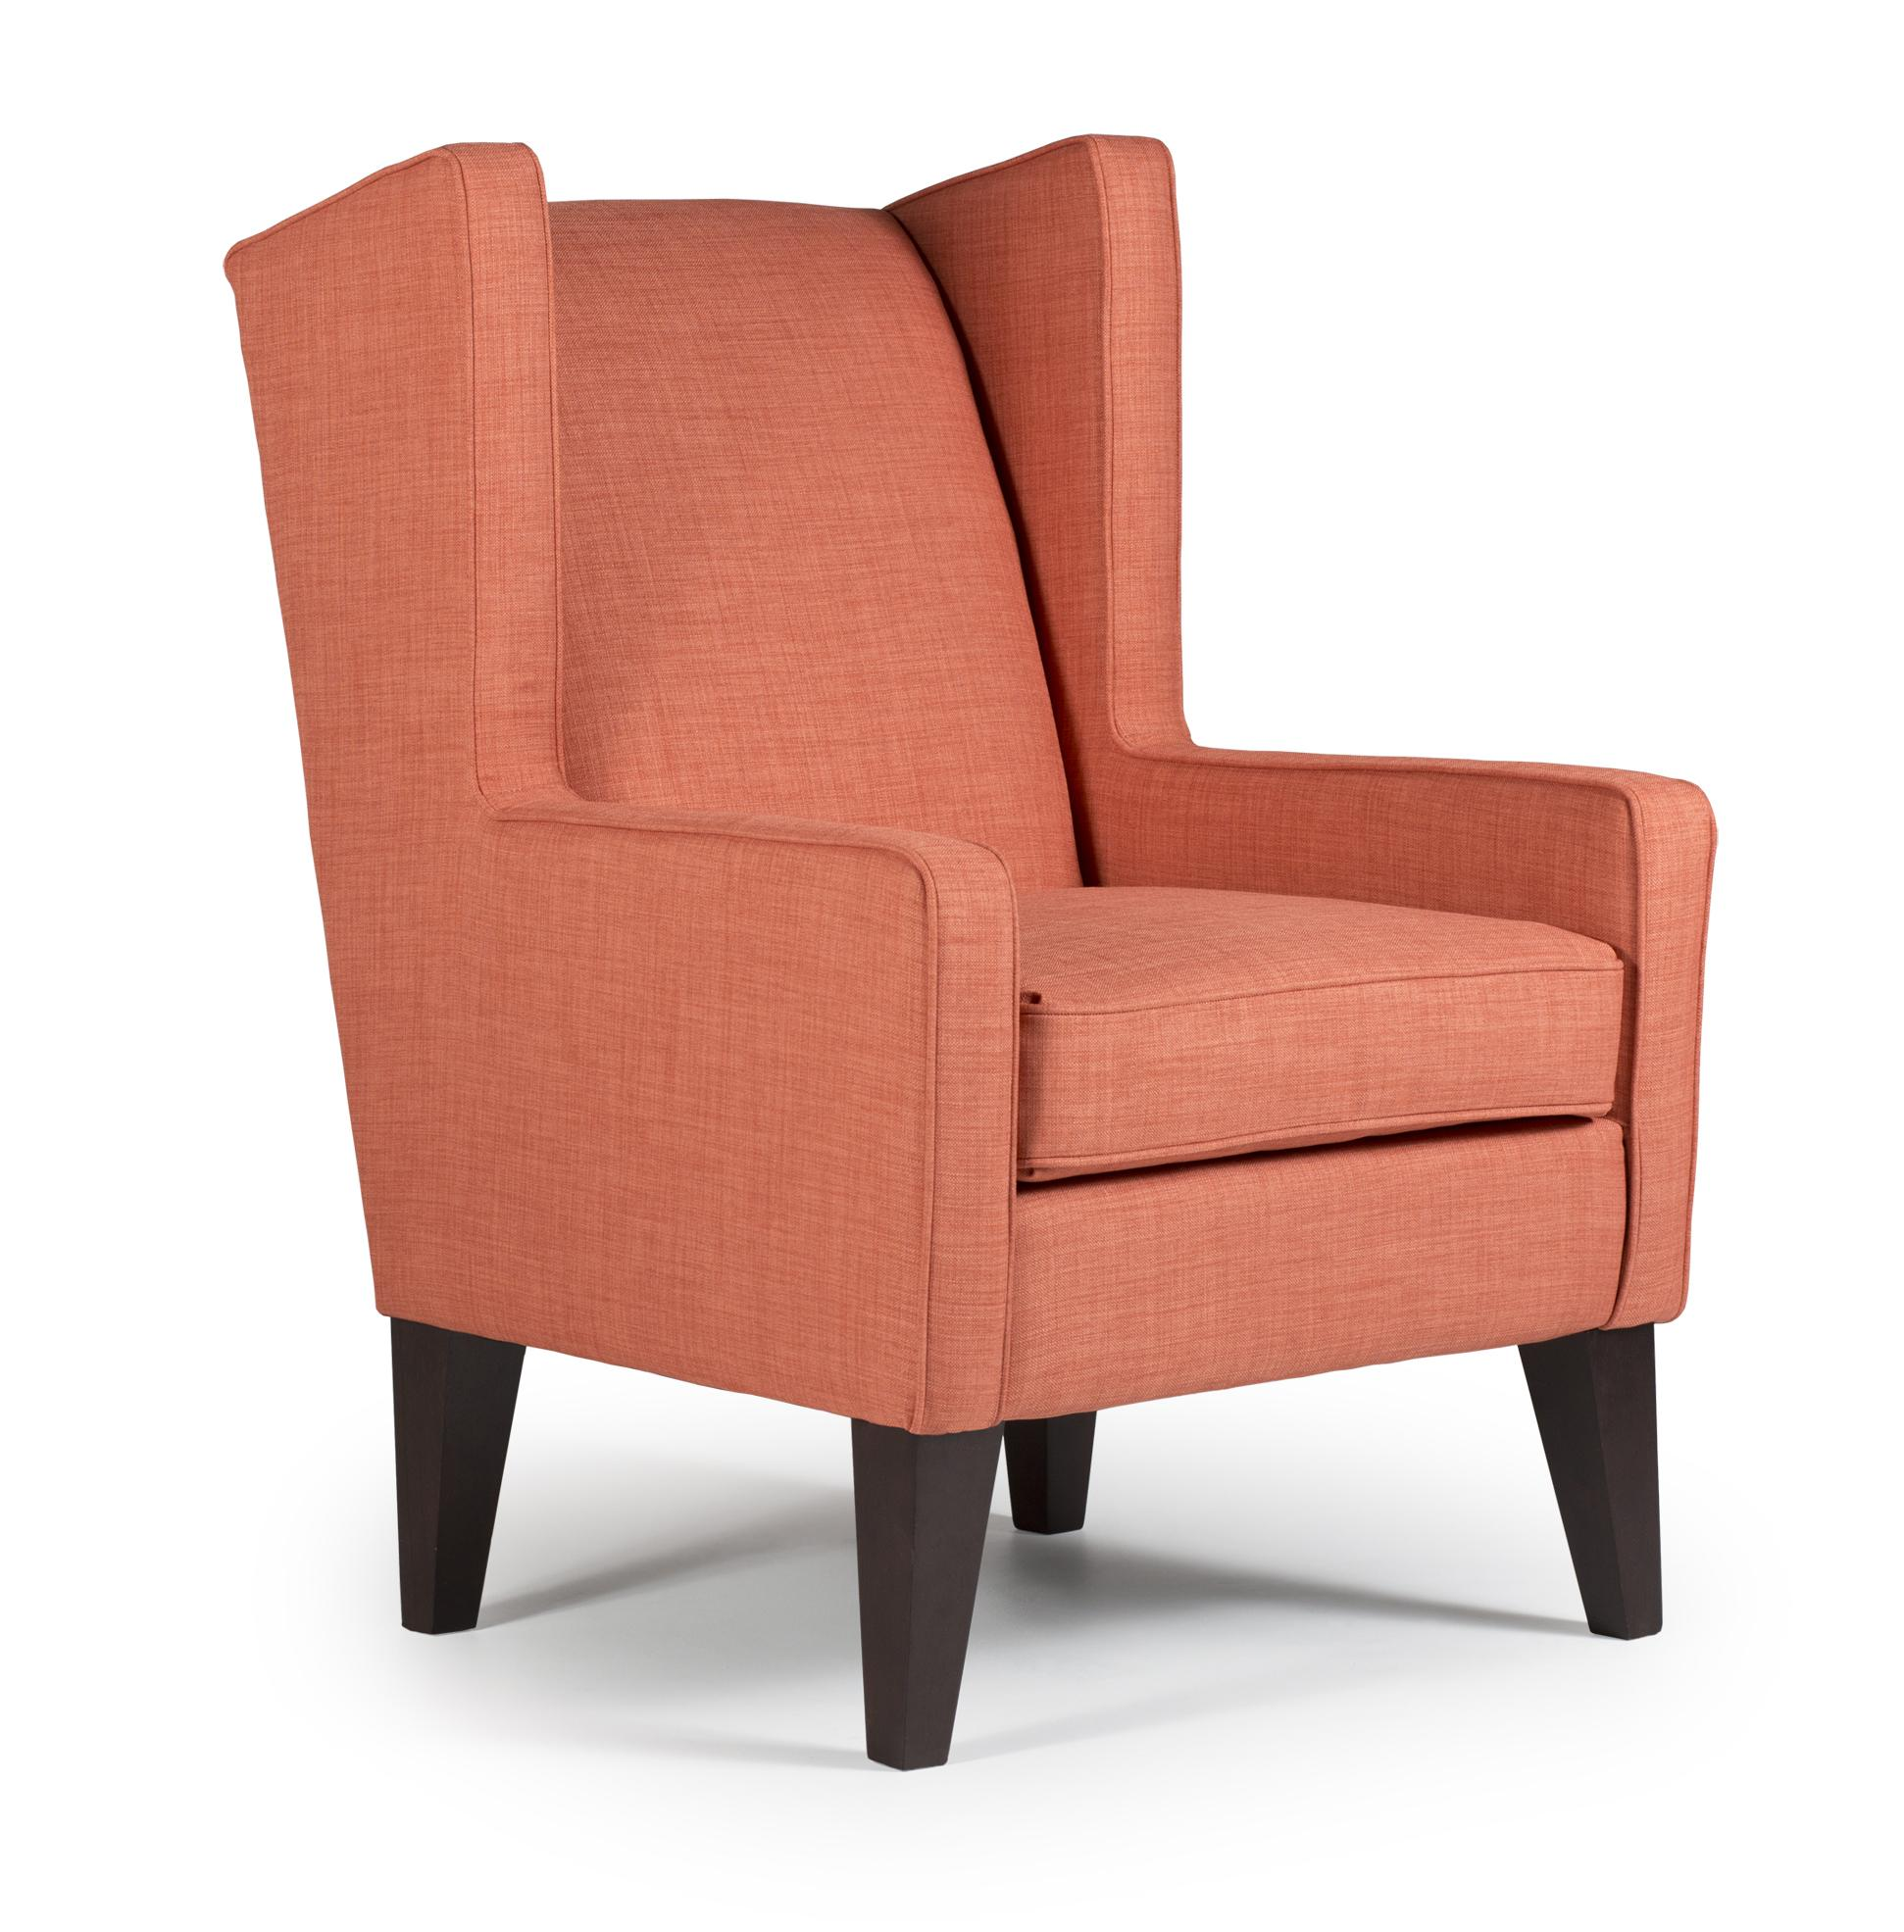 best home furnishings chairs - wing back wing chair - item number: 7170 ZSNDKKQ